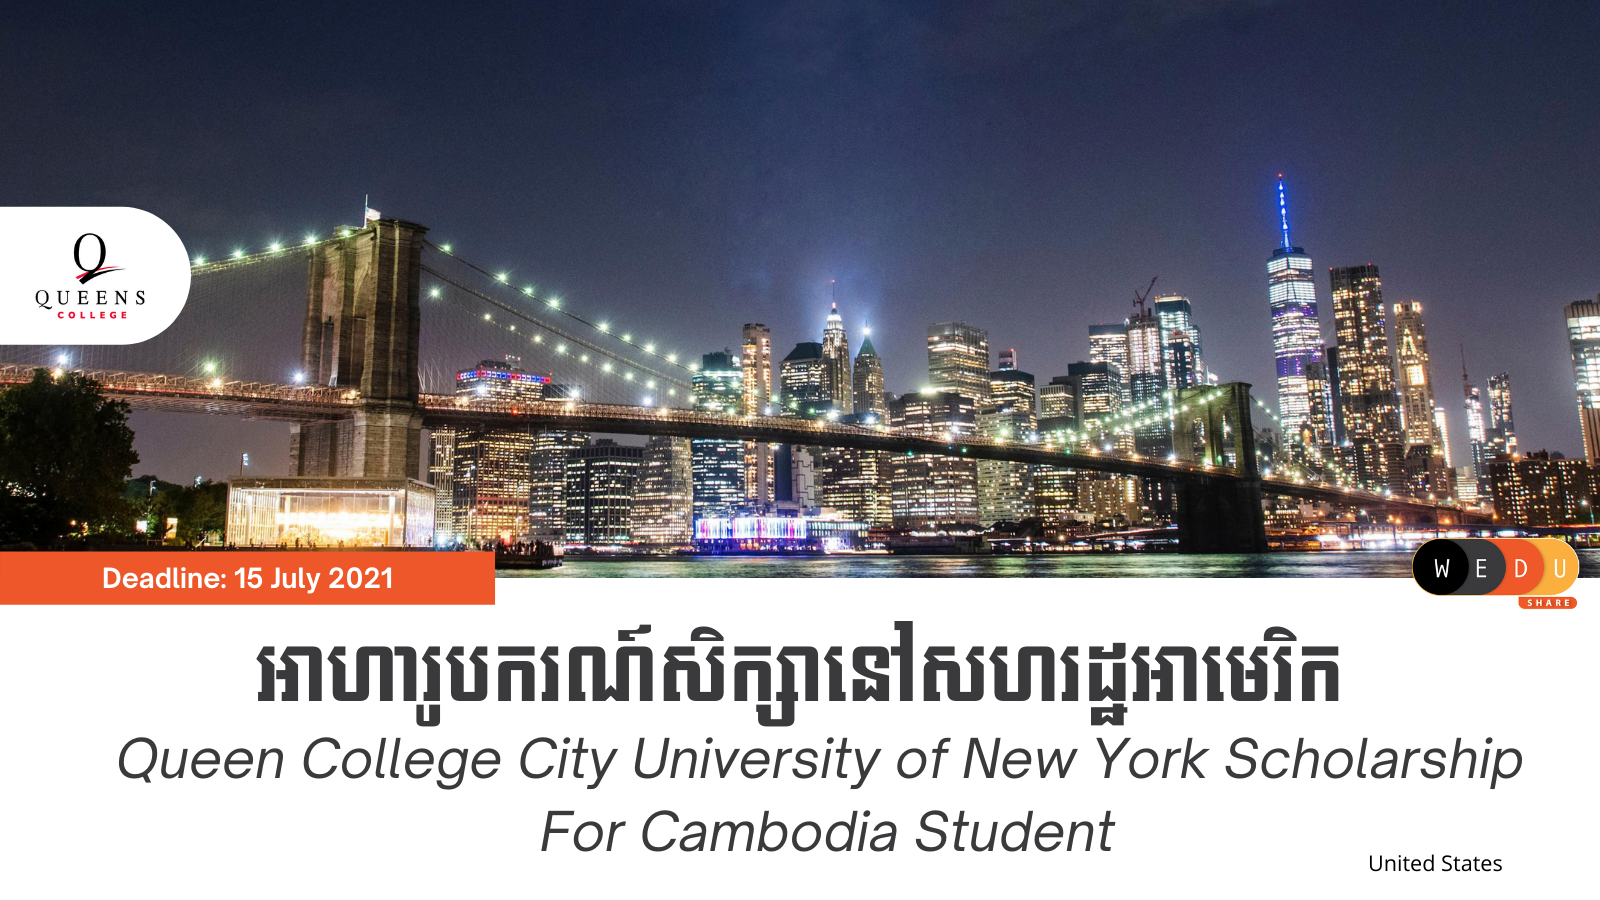 Queen College City University of New York Scholarship For Cambodian Student